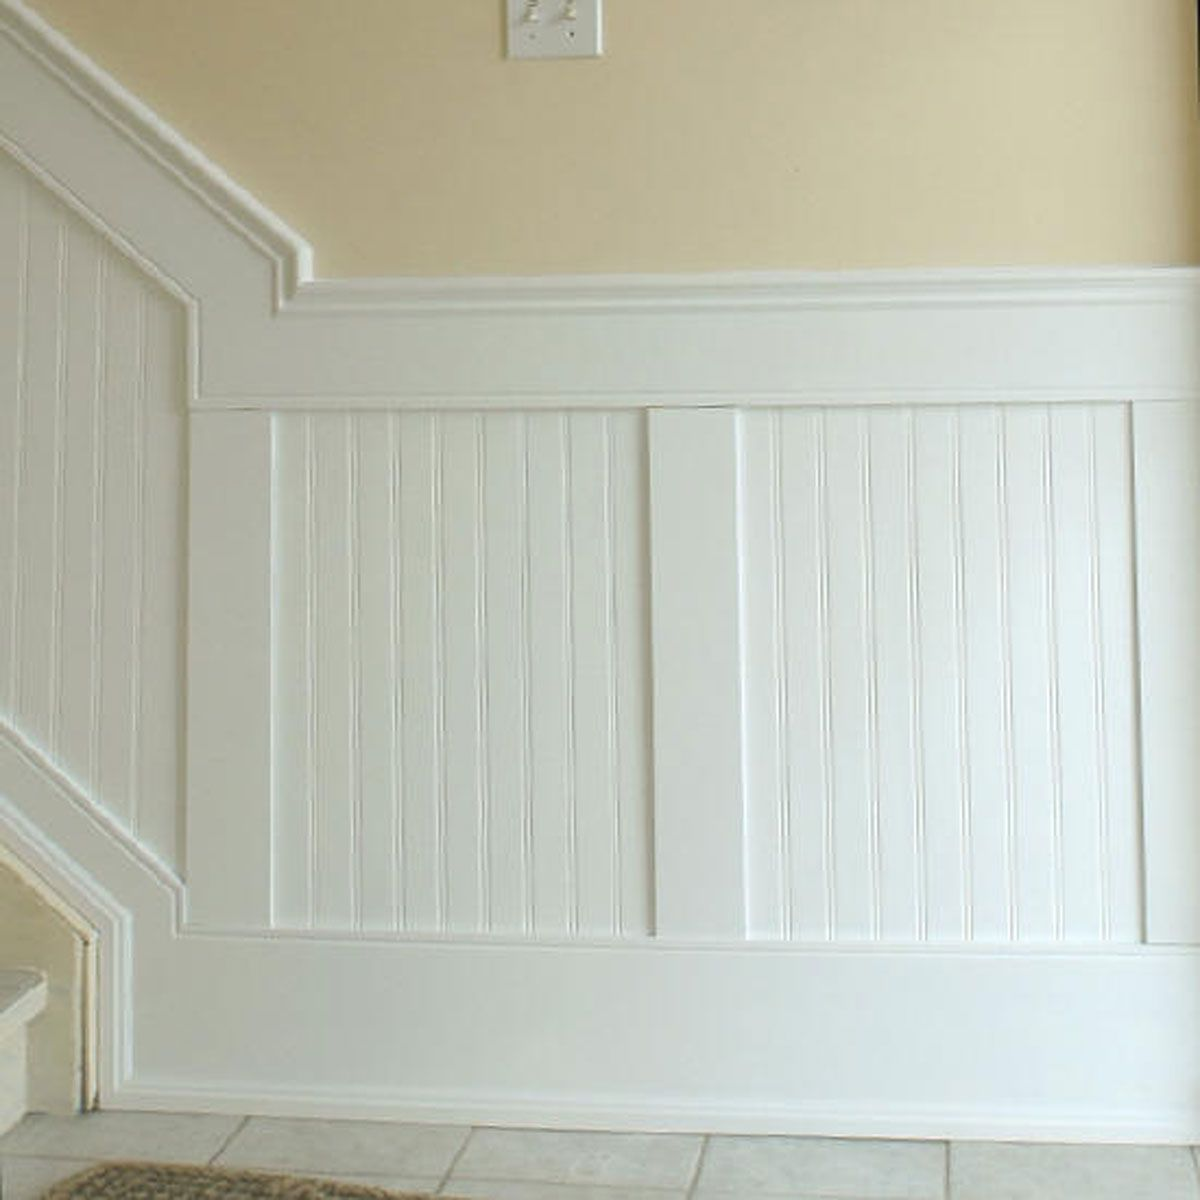 11 Perfected Tongue And Groove Projects Wainscoting Panels Wainscoting Styles Wainscoting Wall